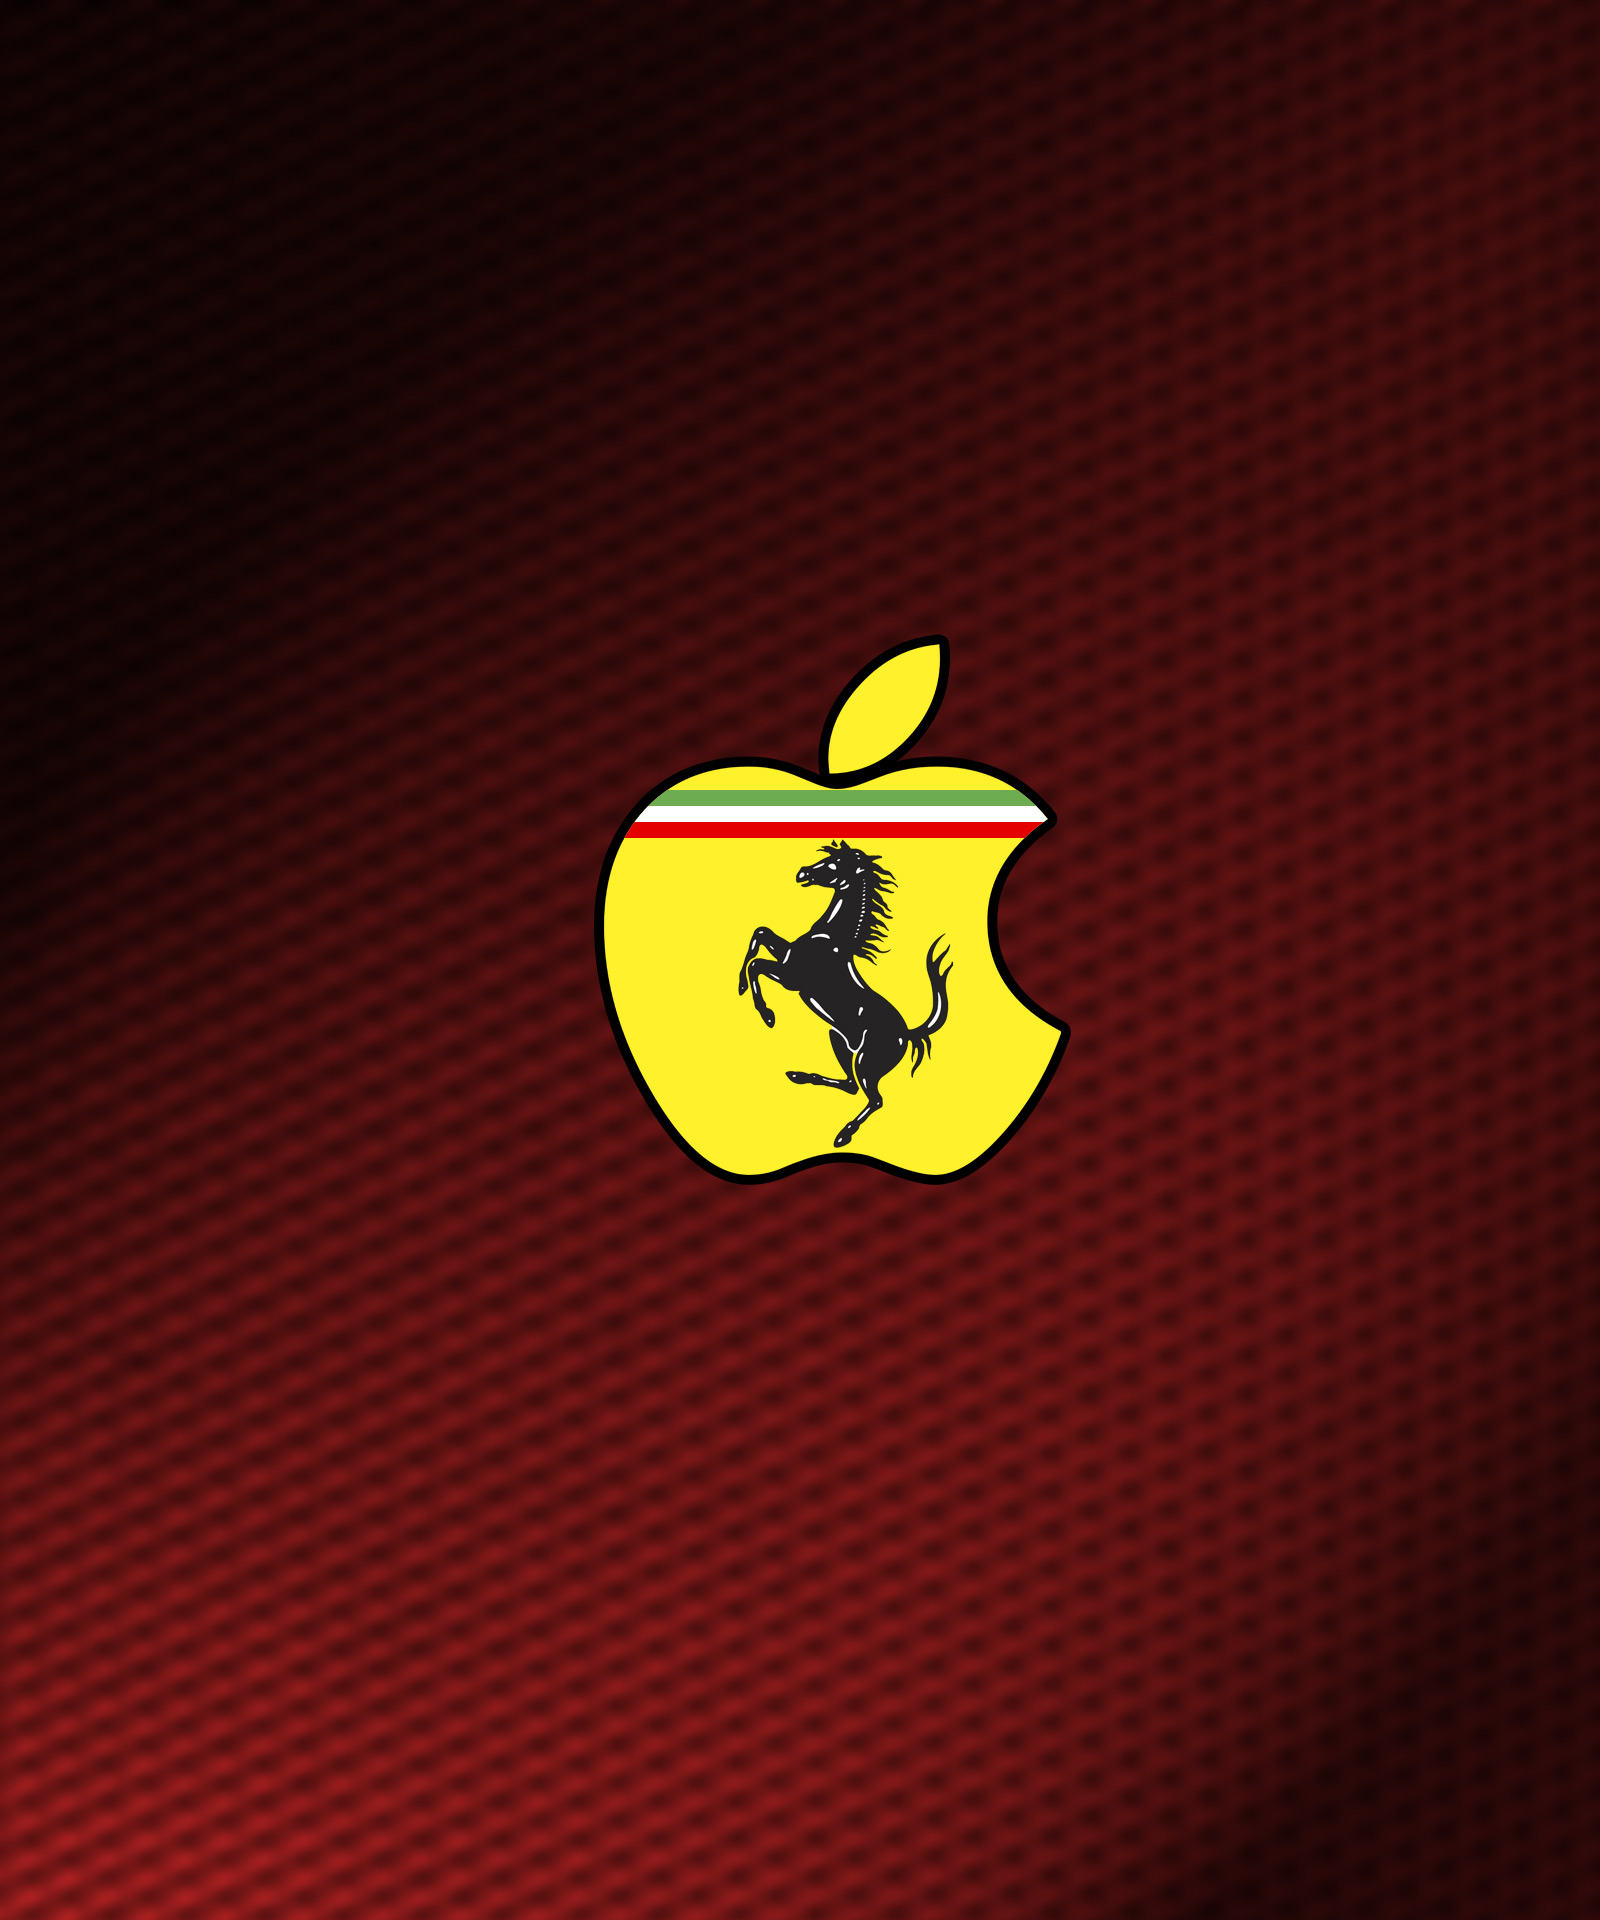 Ipad f1 wallpaper hd